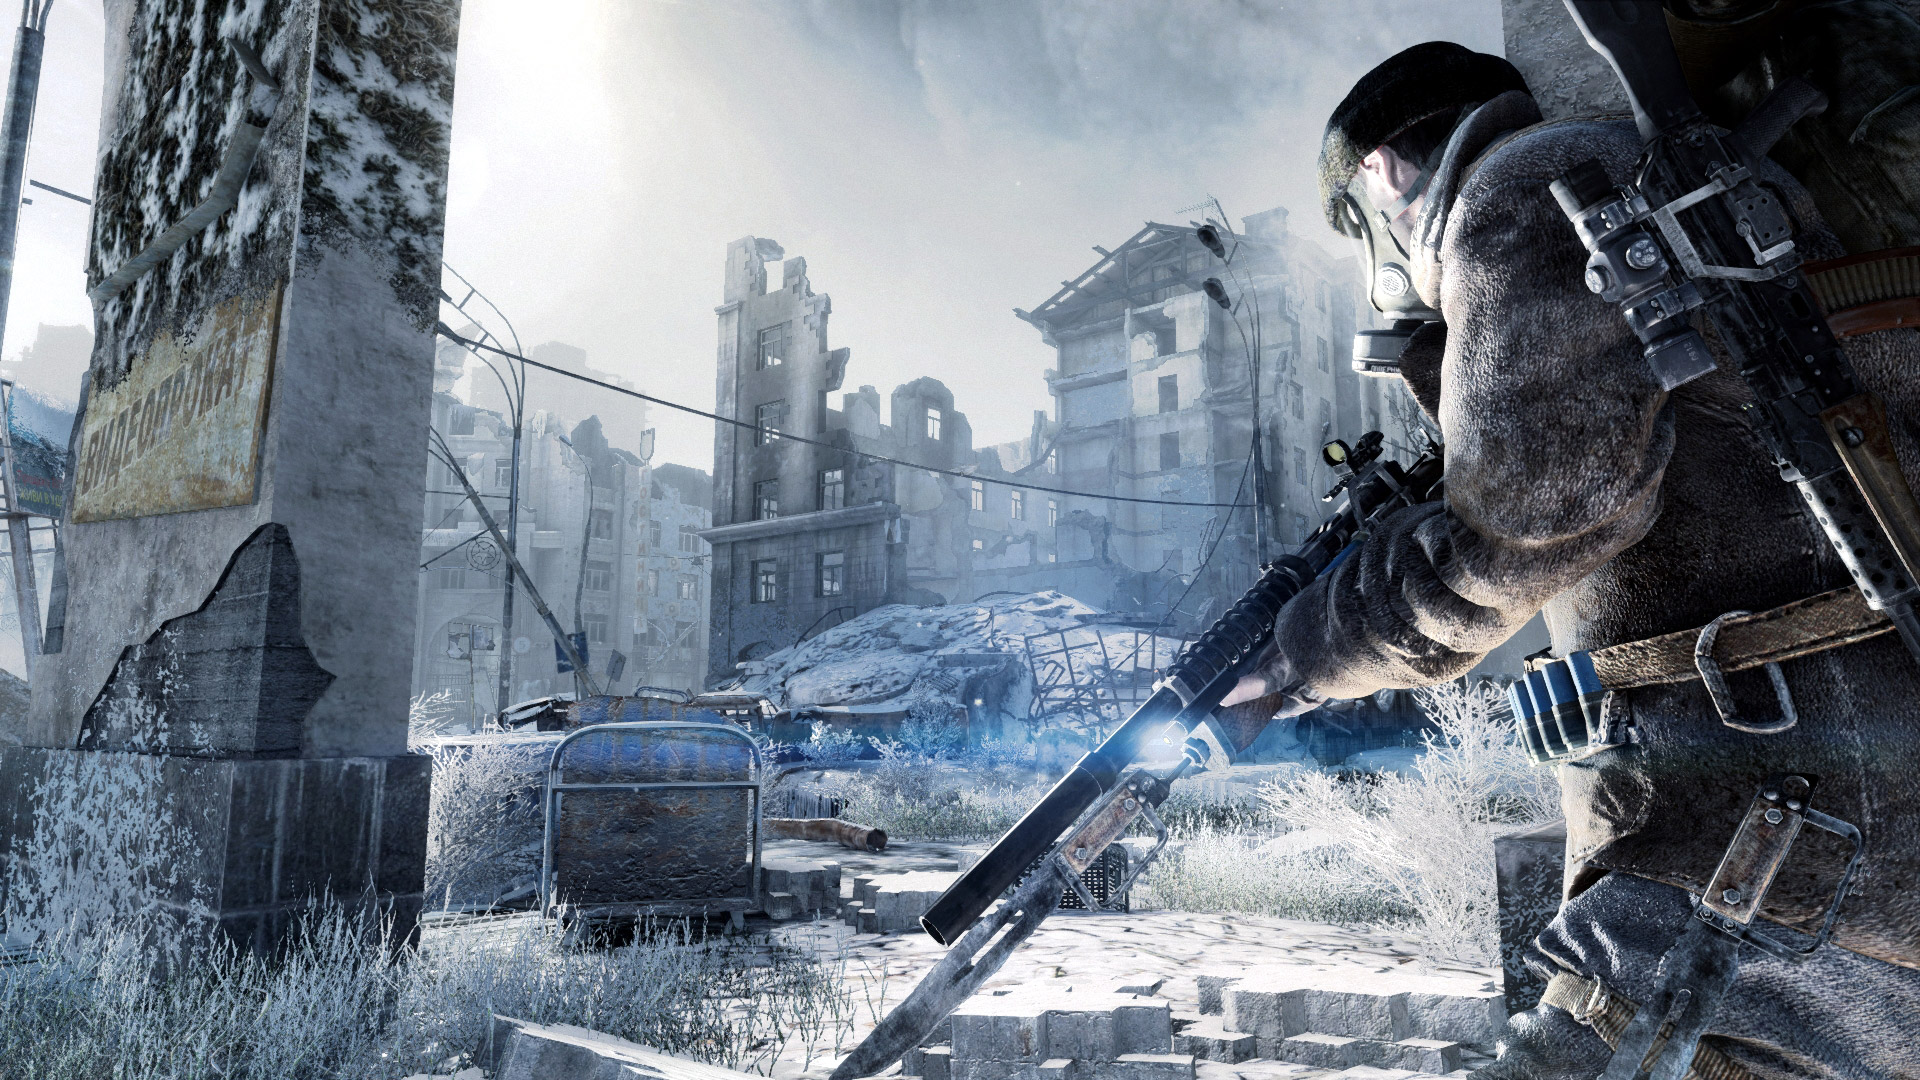 Metro 2033 is getting a film adaptation